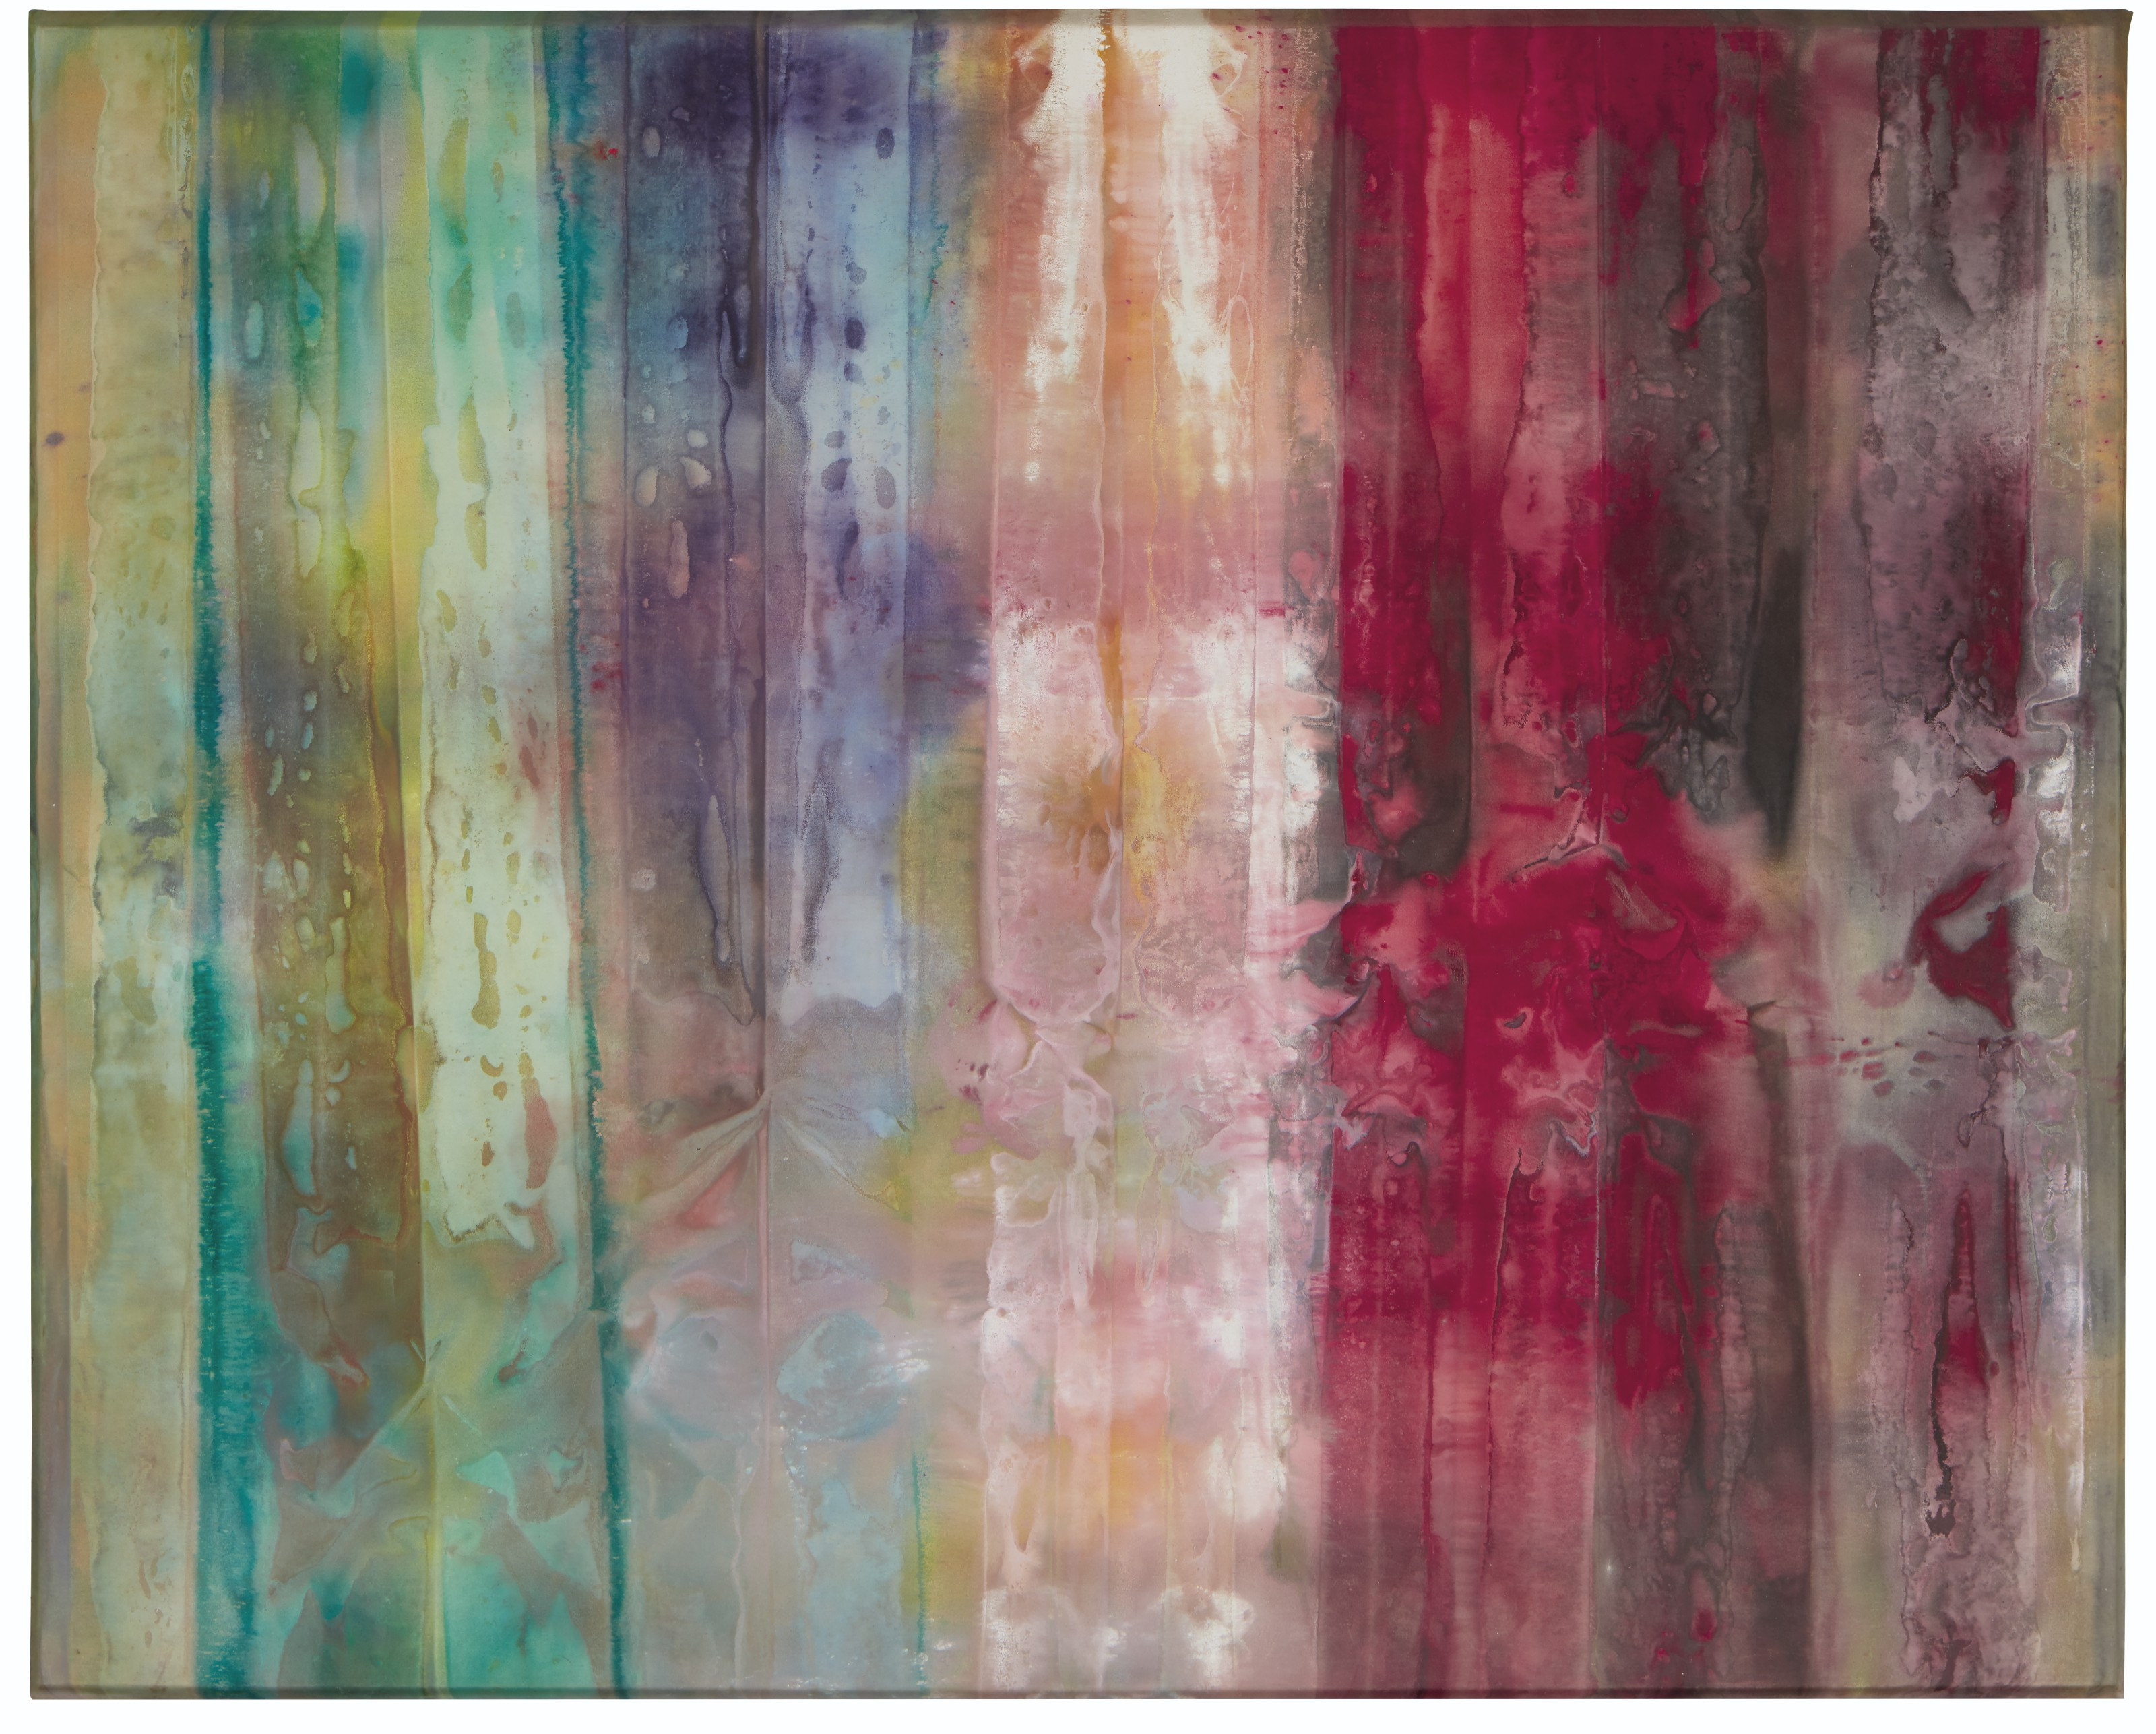 Sam Gilliam (b. 1933)